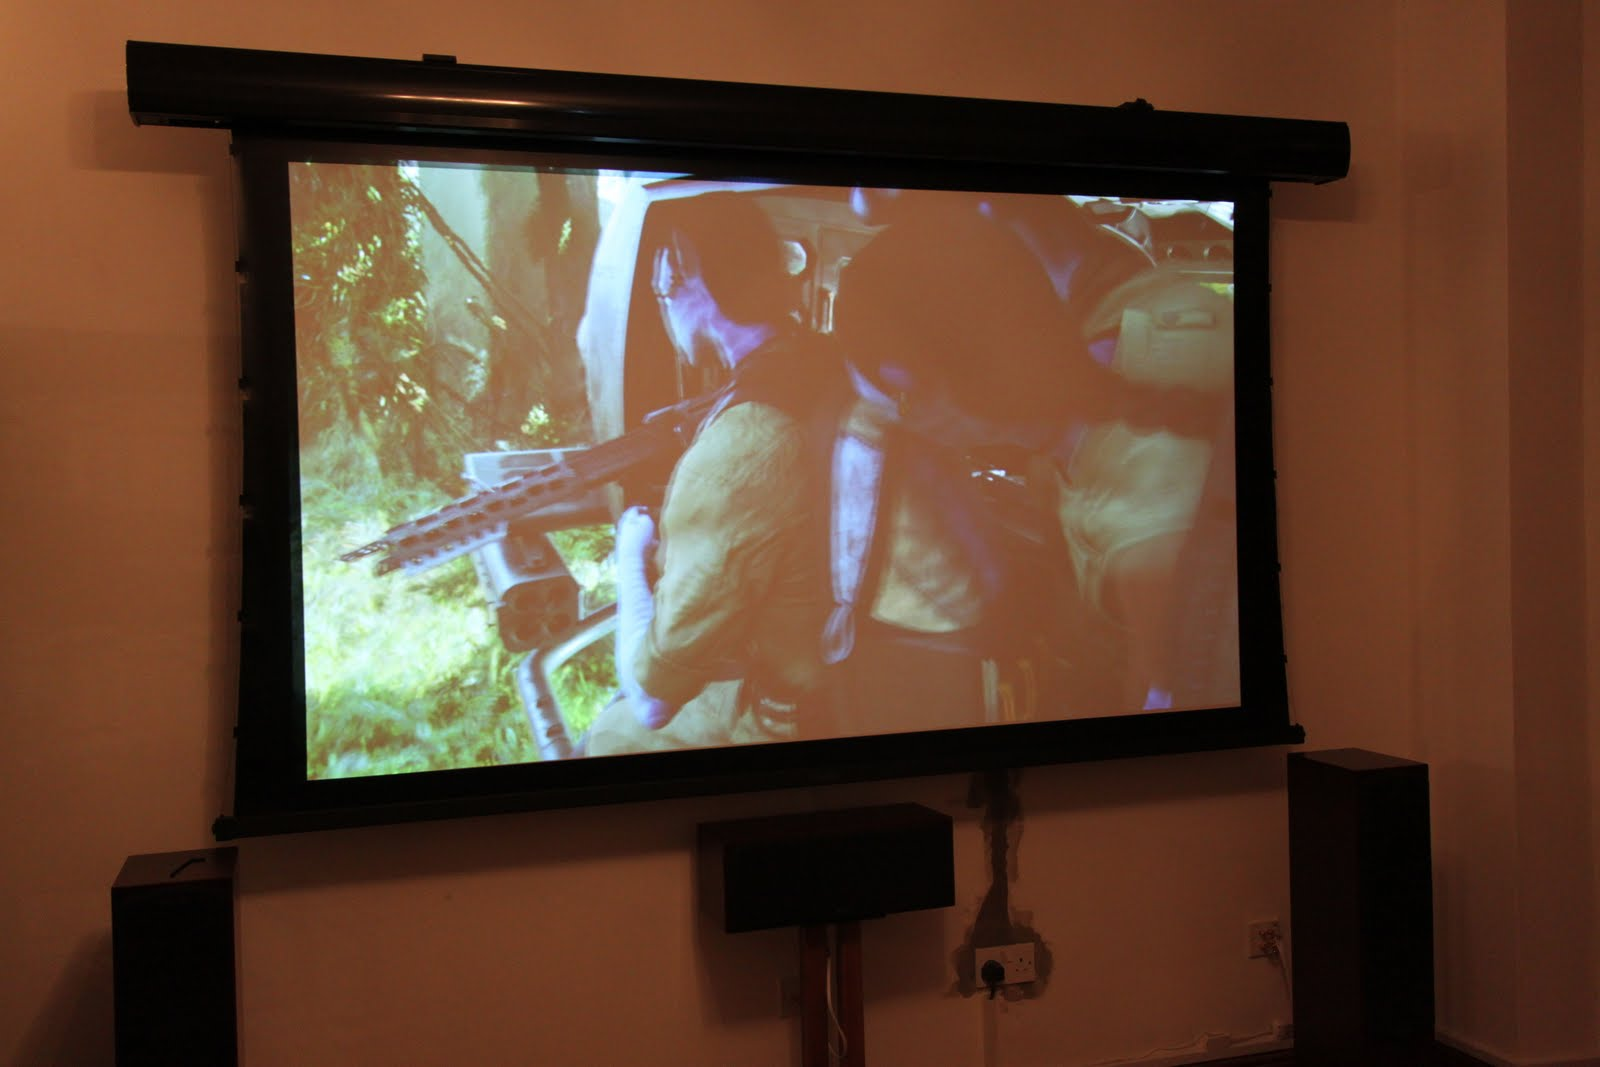 hight resolution of epson 5500 full hd projector a 15m hdmi cable was chased into the wall to the wall mounted projector the home theater was then setup and calibrated